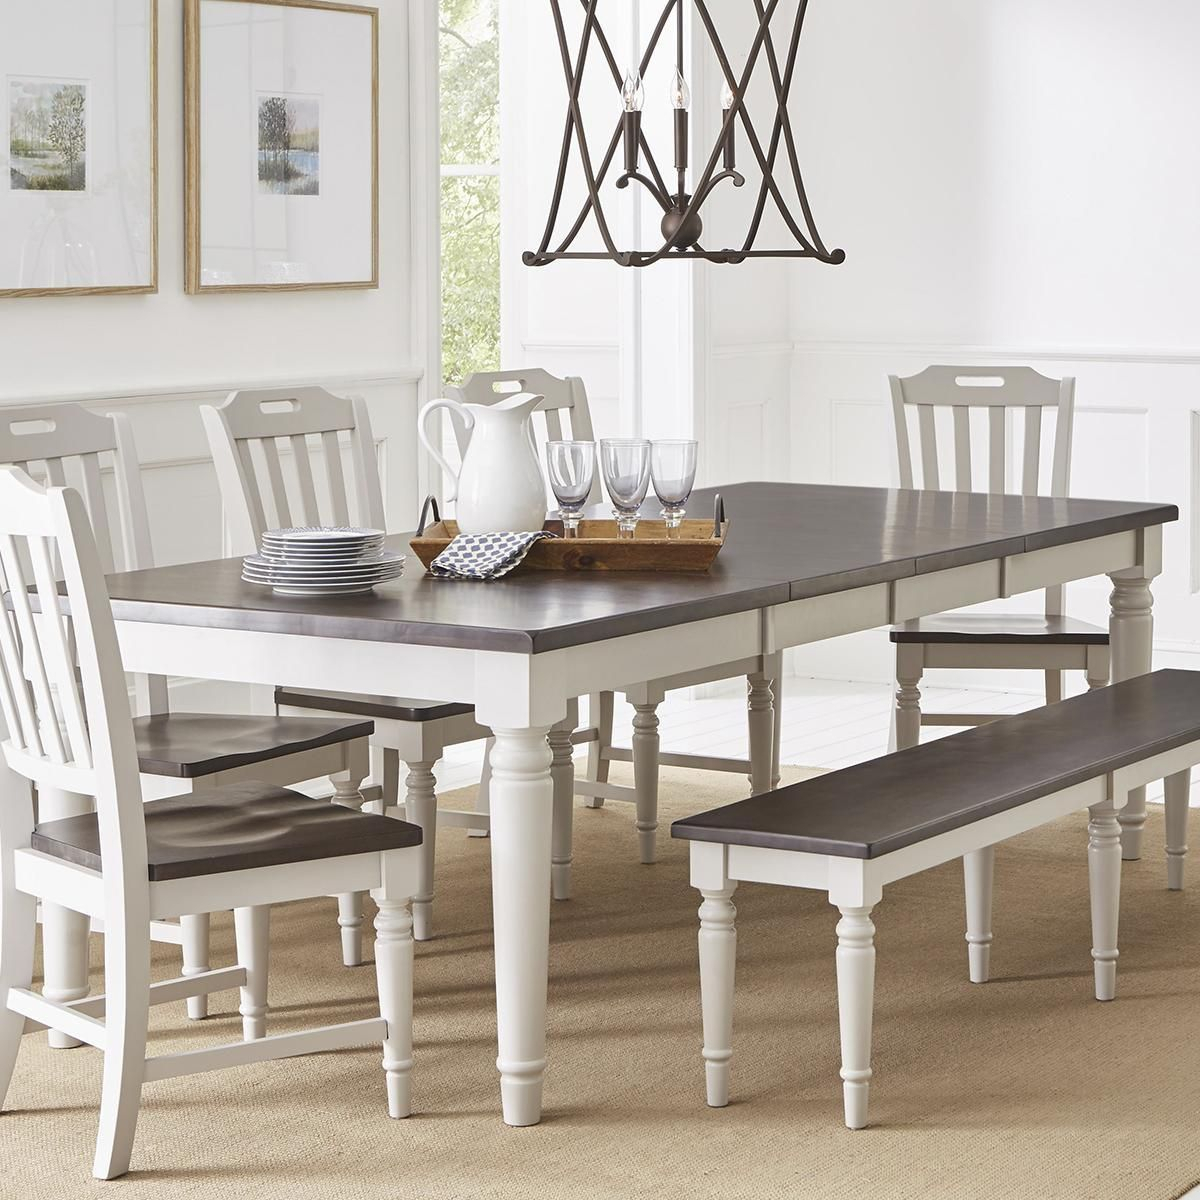 Waltham Orchard Park 6 Piece Dining Set In Dove Gray With Regard To Most Recently Released Ingred Extending Dining Tables (View 7 of 25)